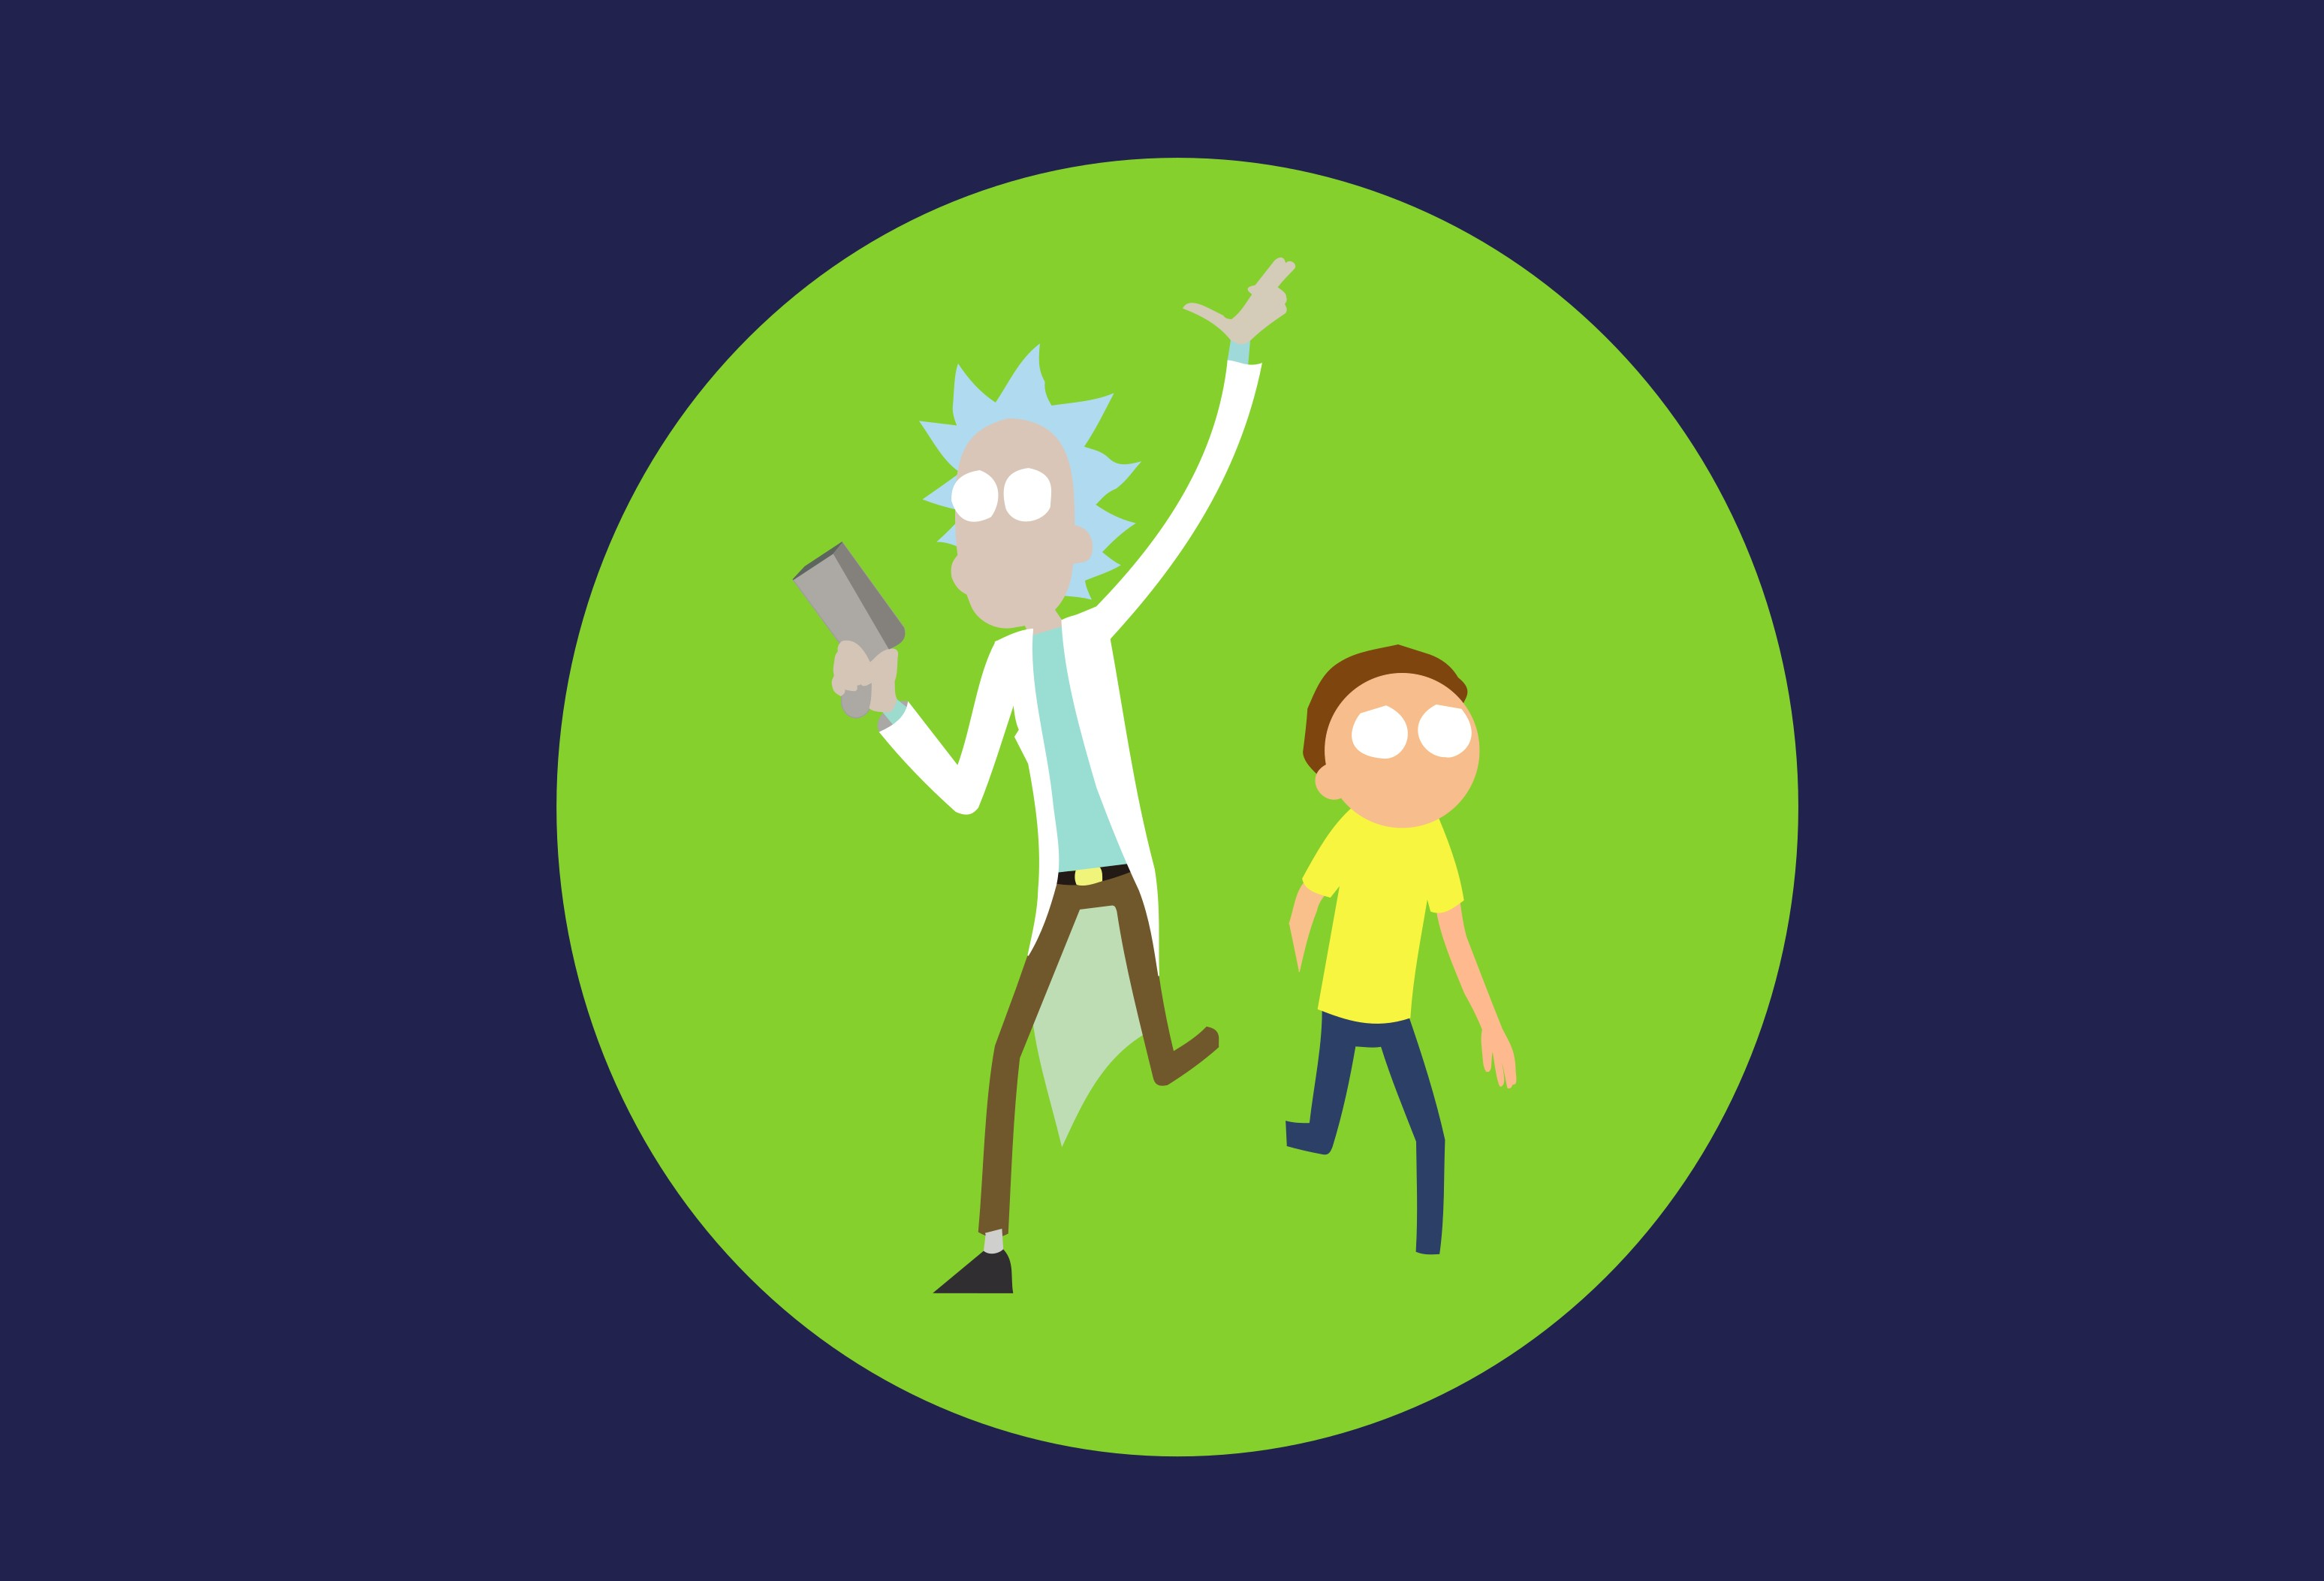 Rick and Morty wallpaper Download HD wallpapers of 3095x2105